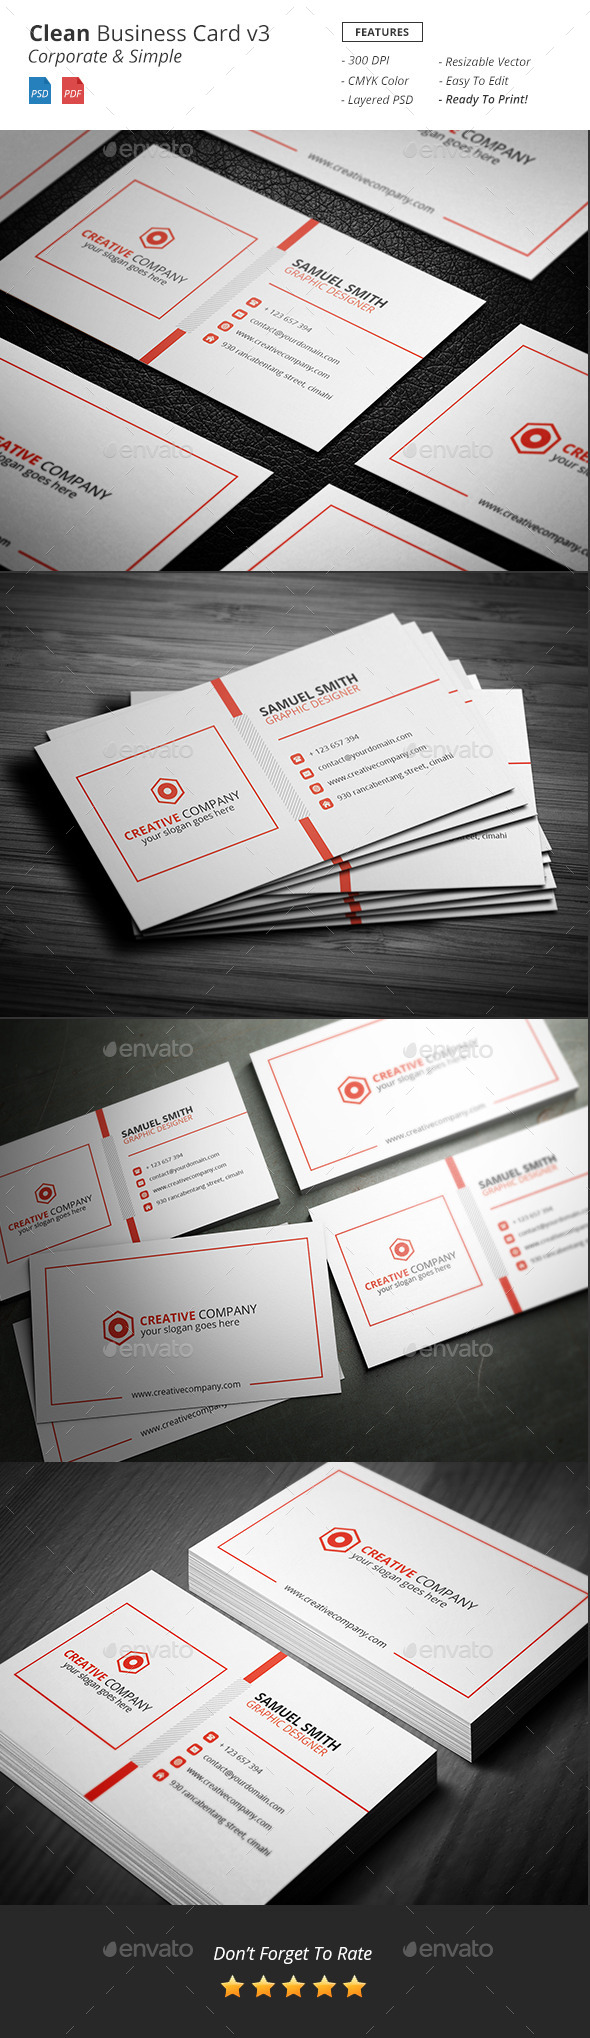 Clean Corporate Bussiness Card v3